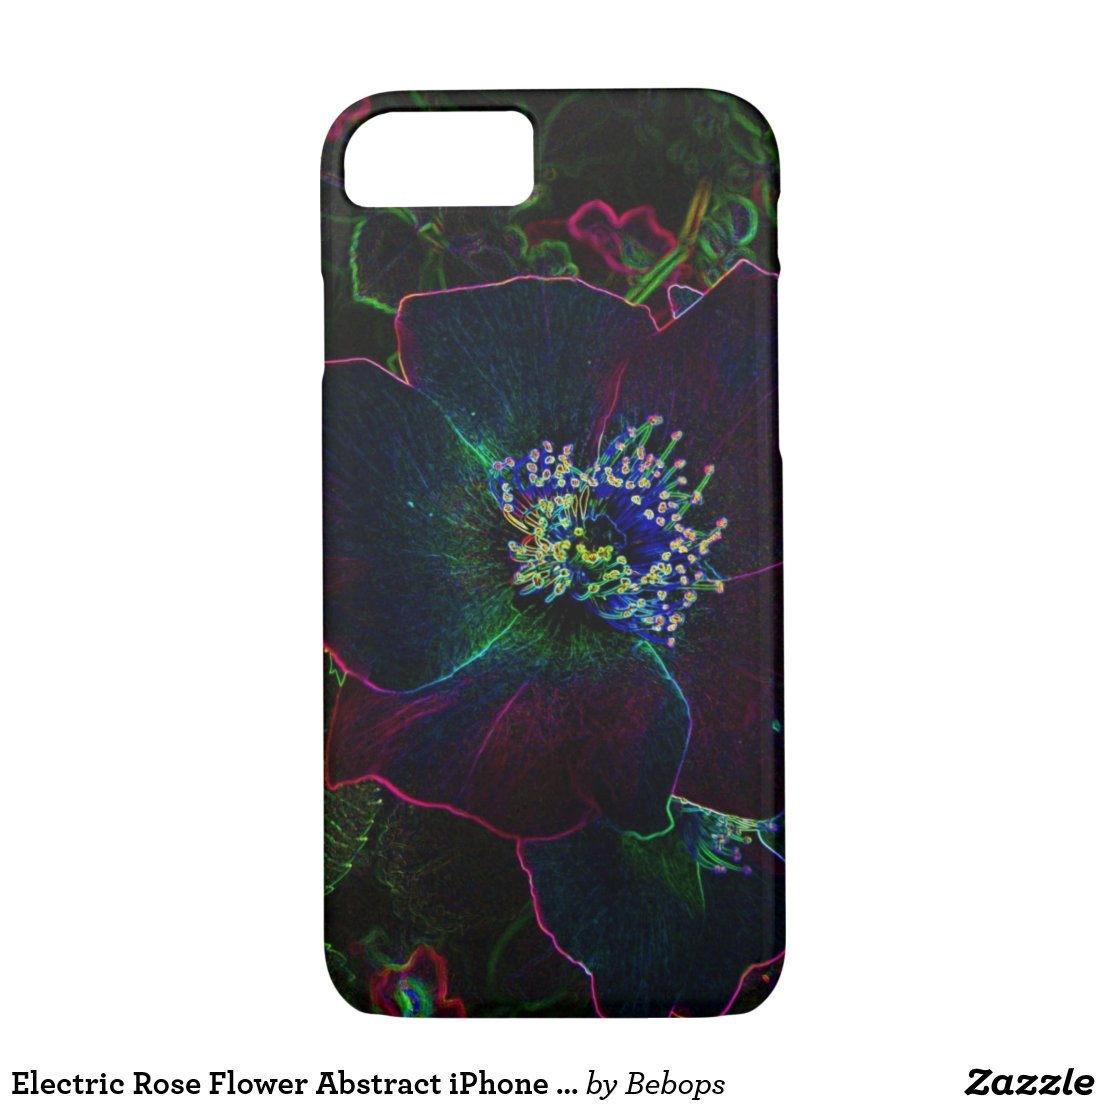 Electric Rose Flower Abstract iPhone 7 Case